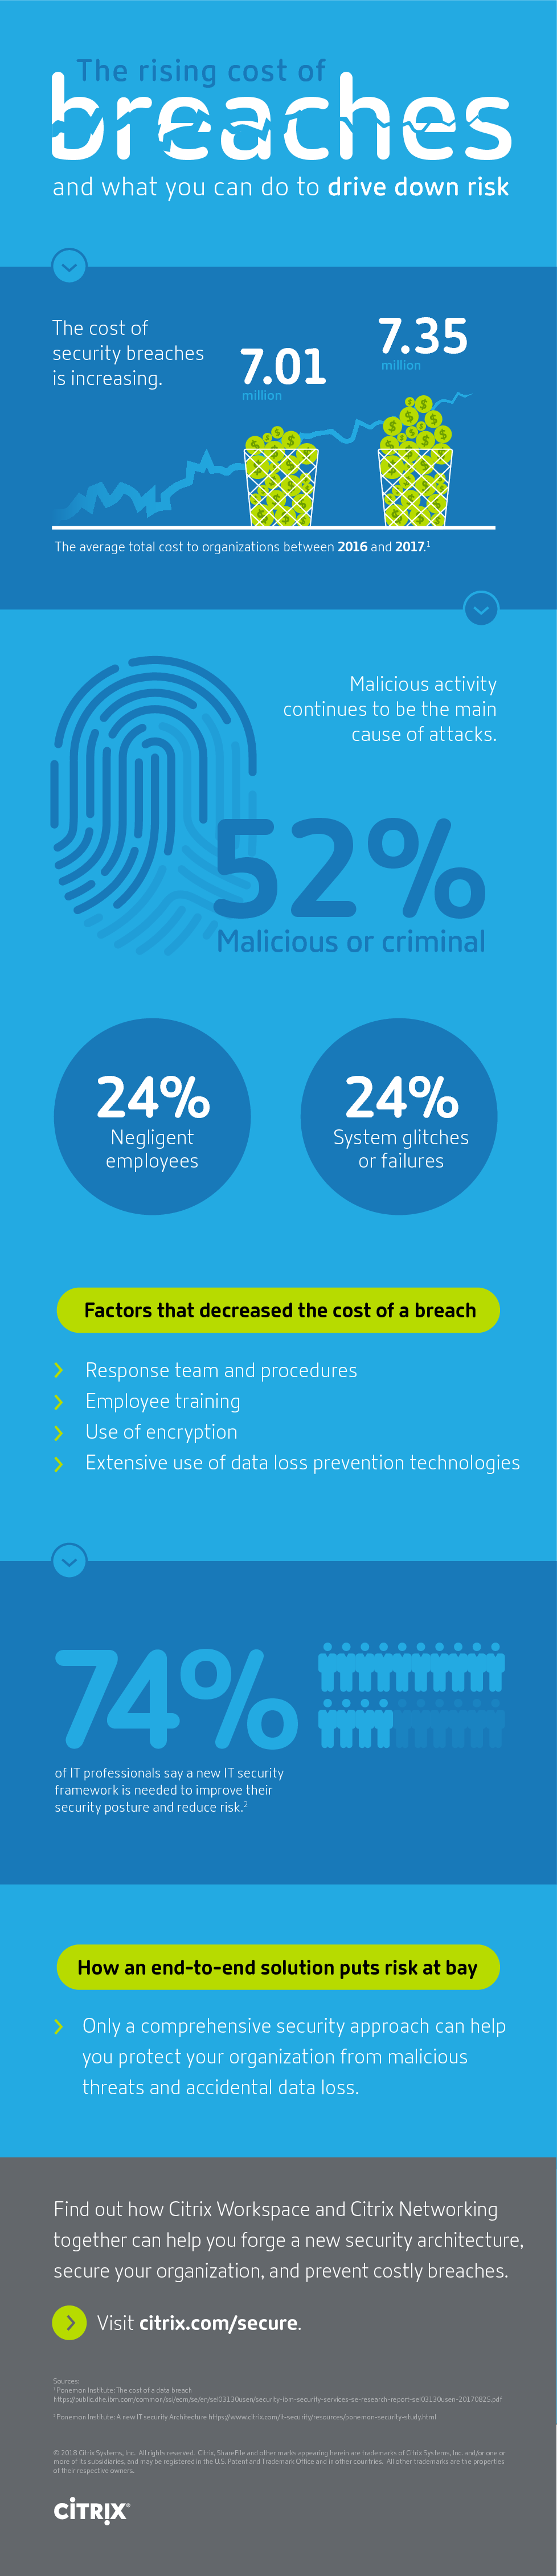 Thumb original the rising cost of breaches